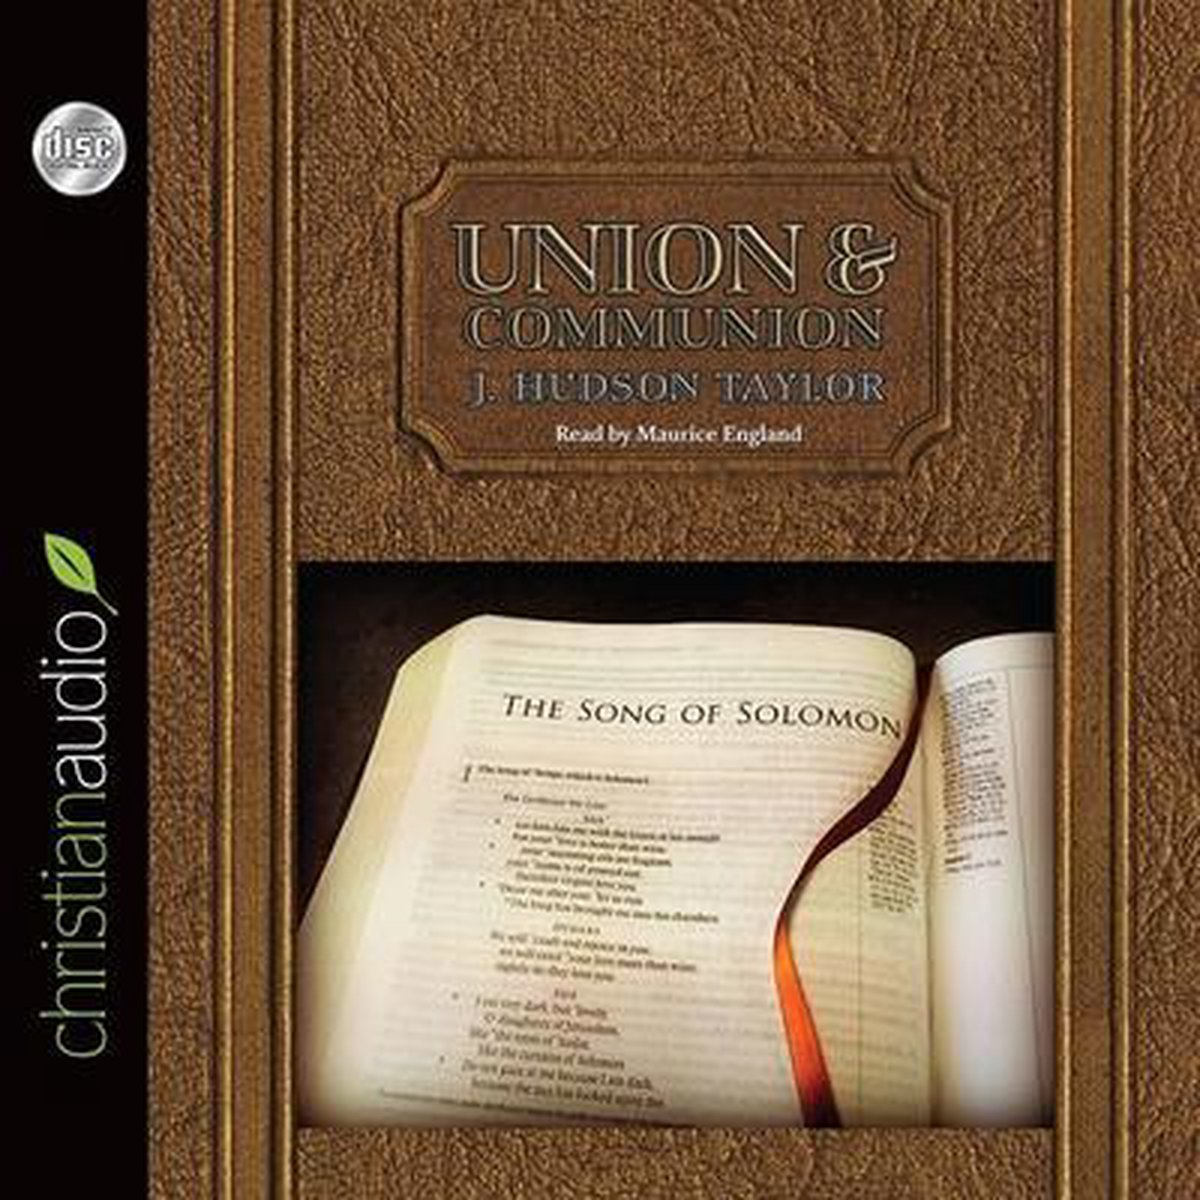 Union and Communion: Thoughts on the Song of Solomon